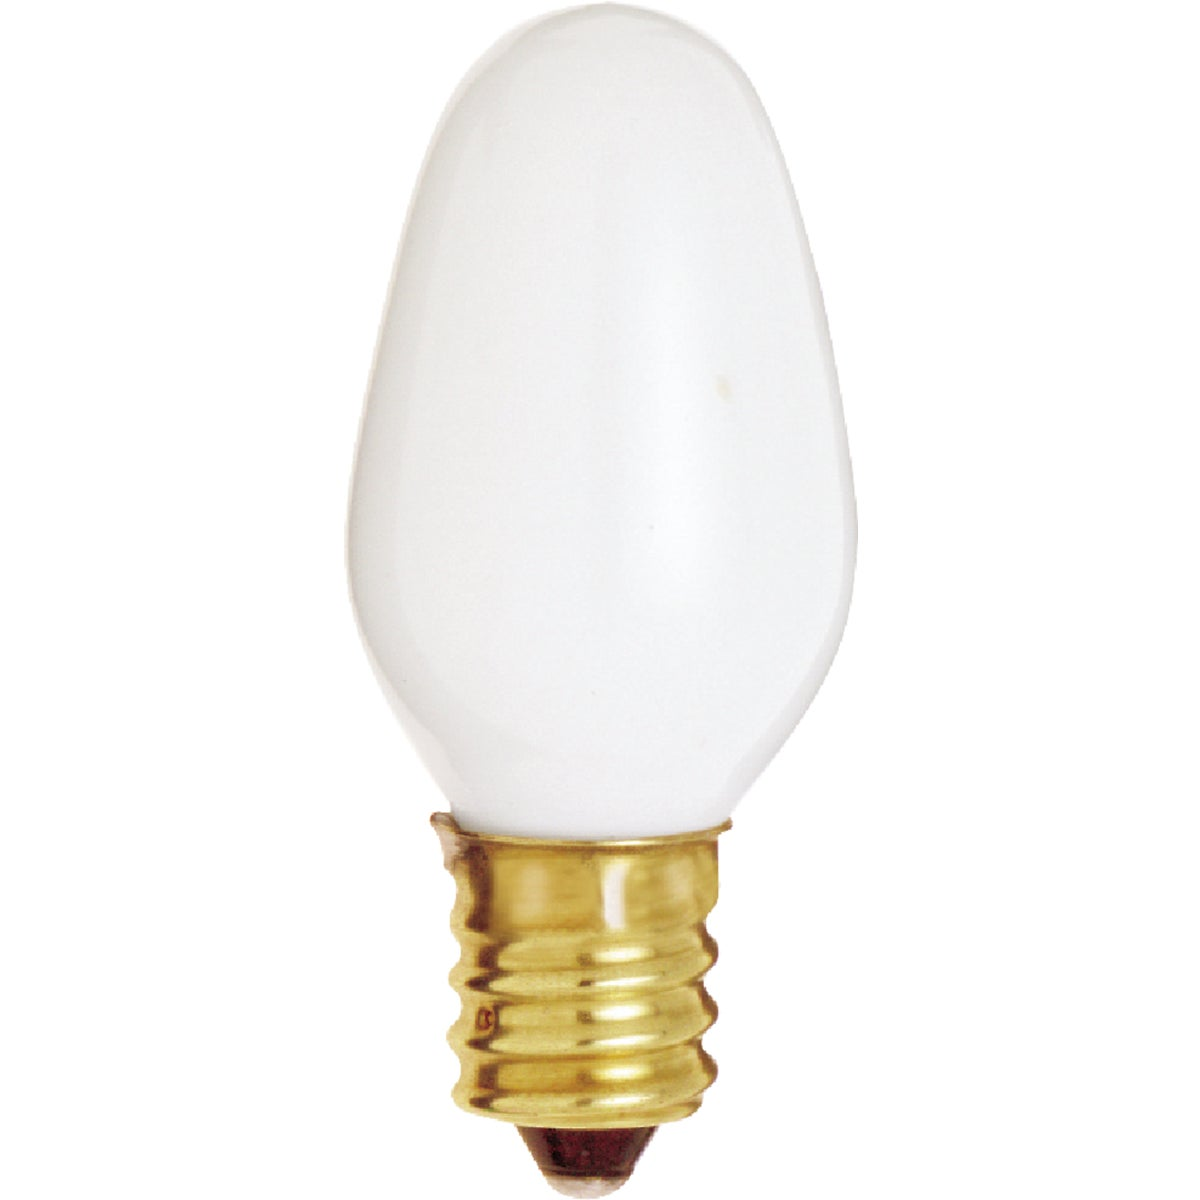 4W 4PK WHT NITELITE BULB - 20573 4C7/W/S4PK by G E Lighting